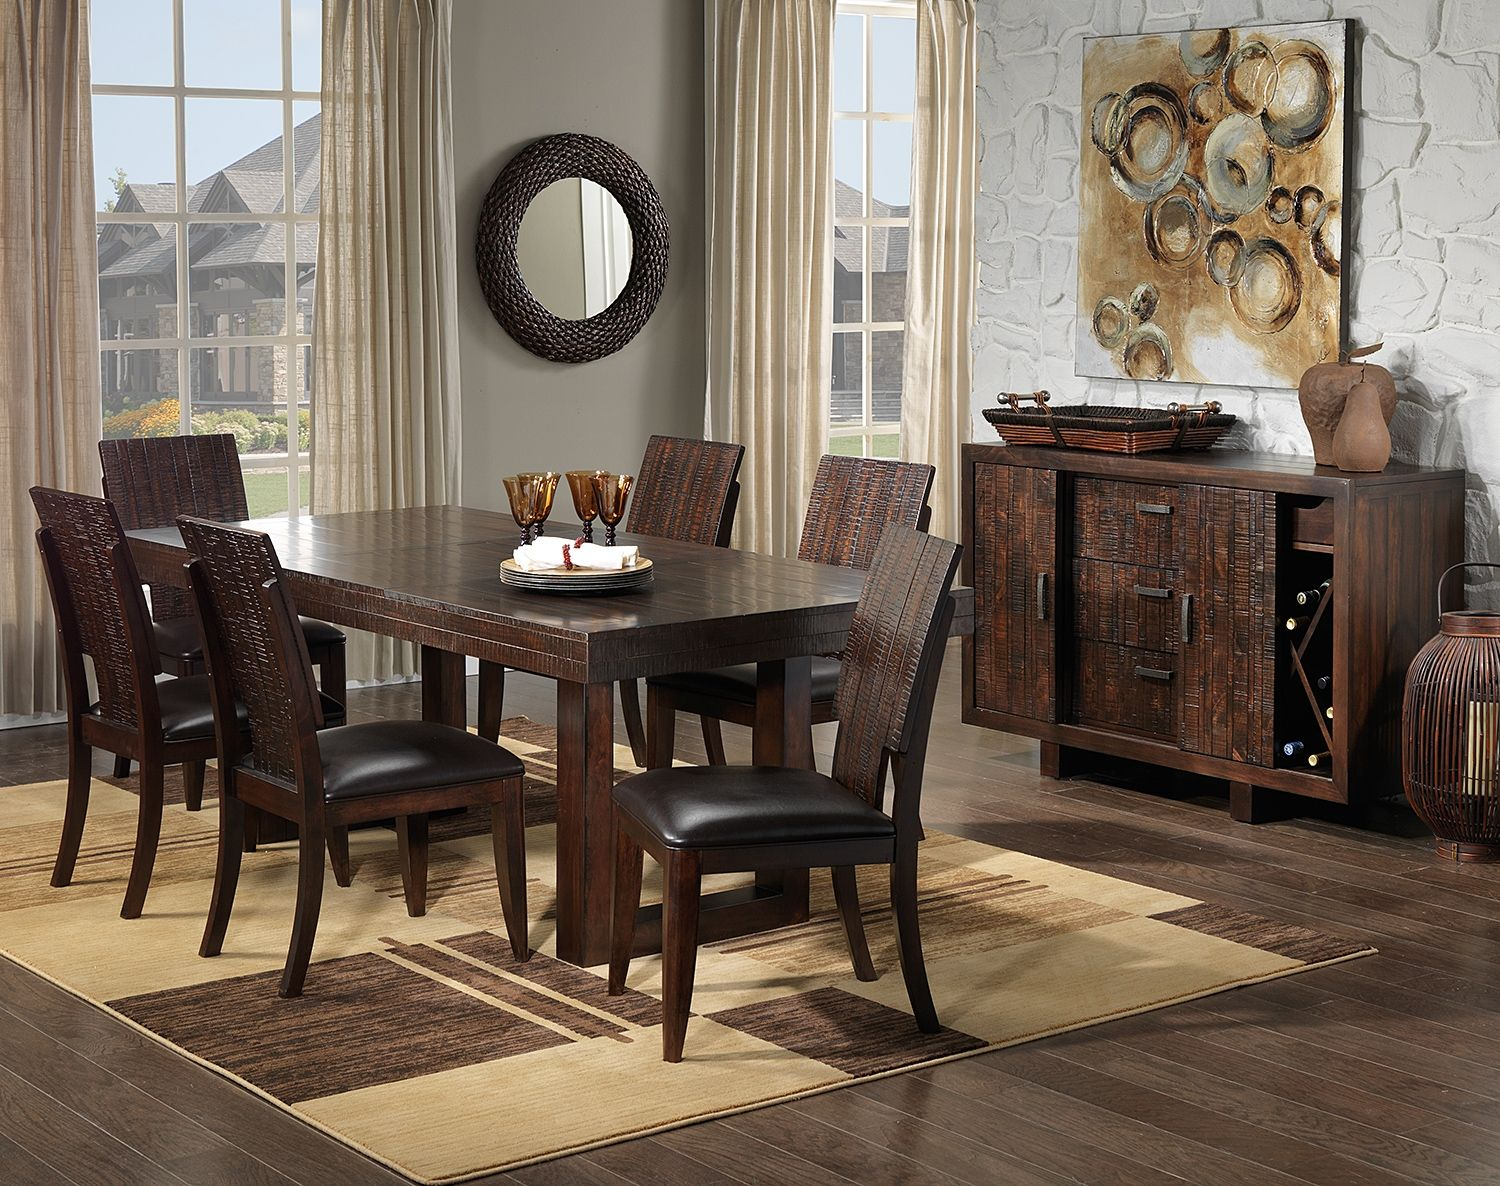 Dining Room Tables Portland Or 1000 Images About Mmmdinner On Pinterest Casual Dining